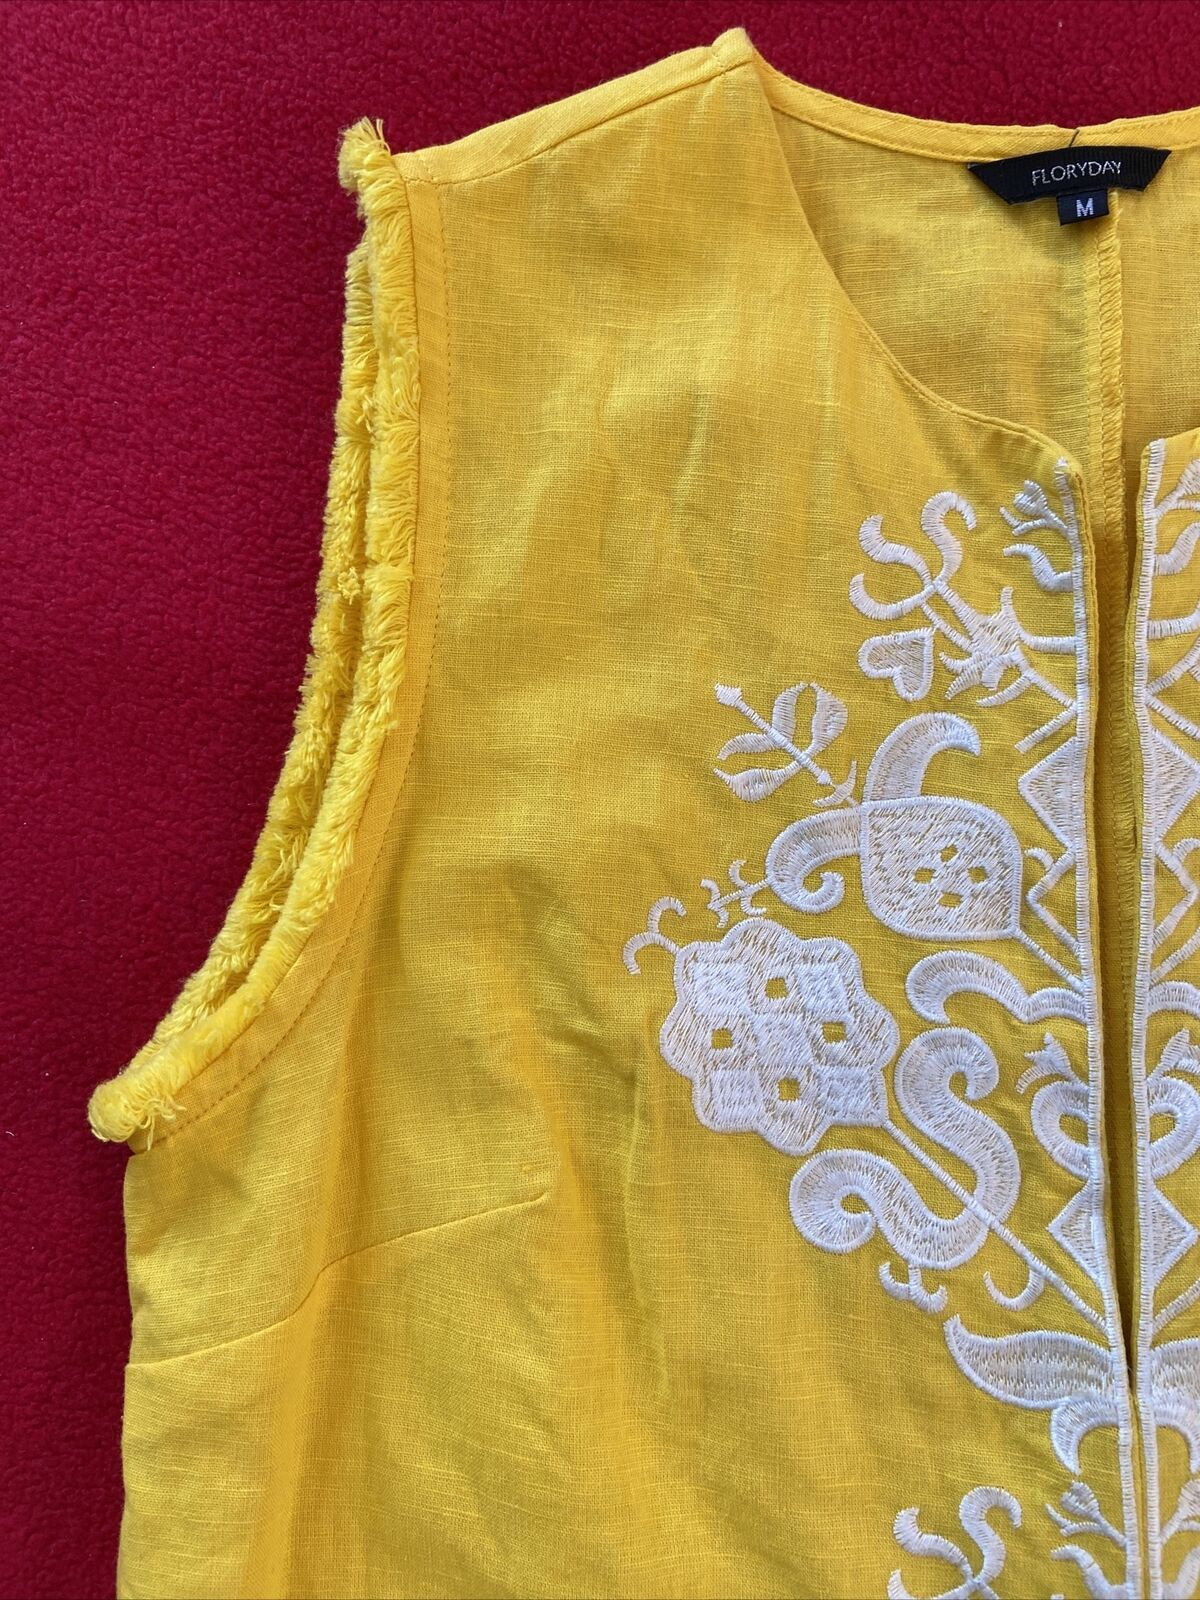 floryday bright yellow linen shift dress size med… - image 4